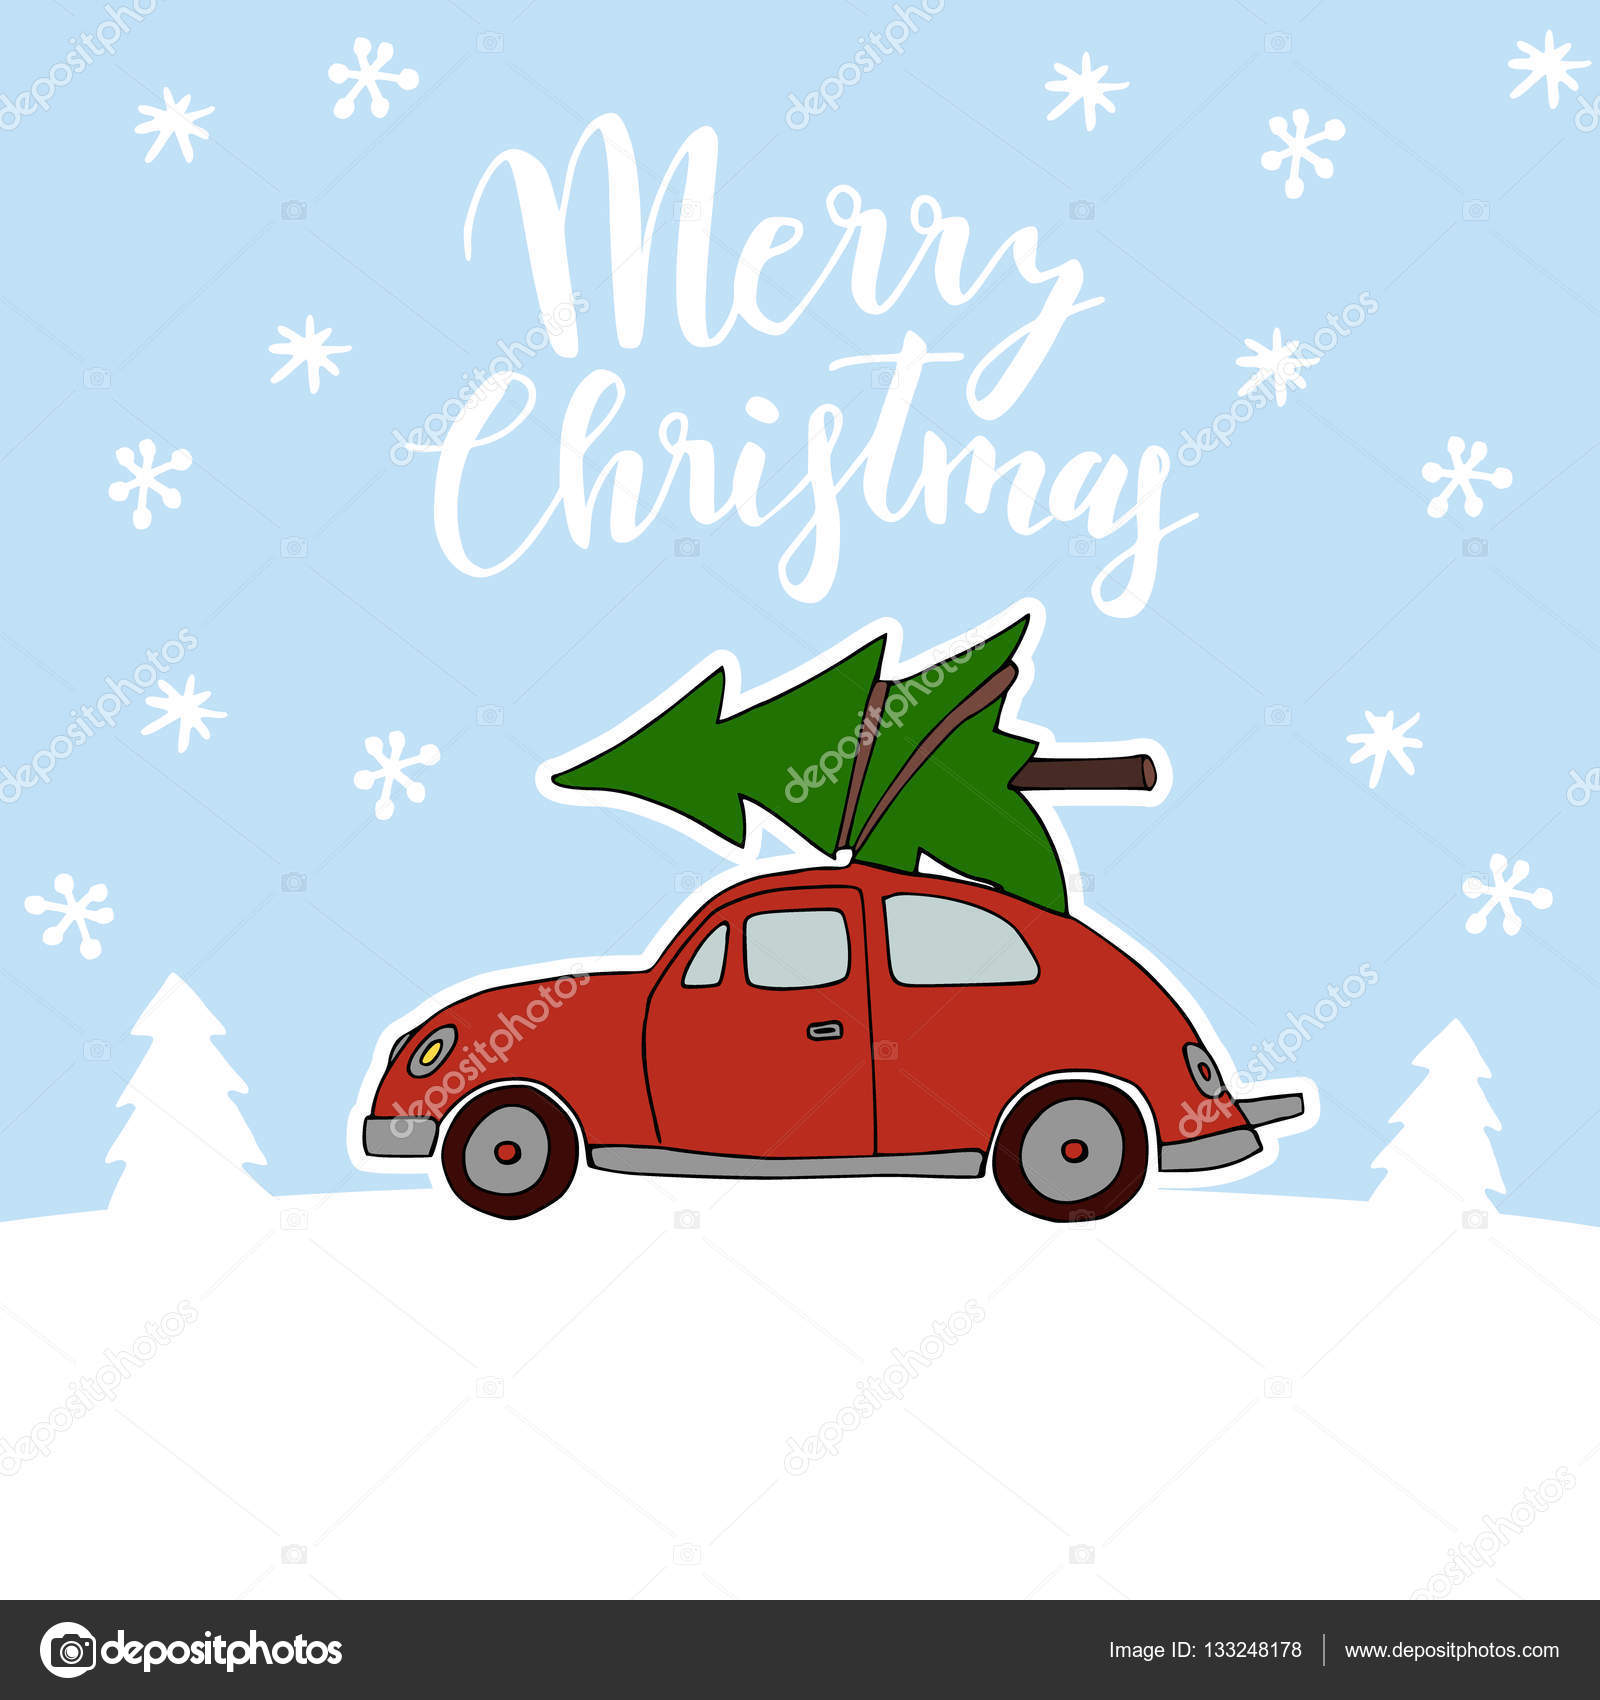 Cute Christmas Greeting Card Invitation With Red Vintage Car Transporting The Christmas Tree On The Roof Snowy Winter Landscape Hand Lettered Text Doodle Vector Illustration Background Vector Image By C Tabitazn